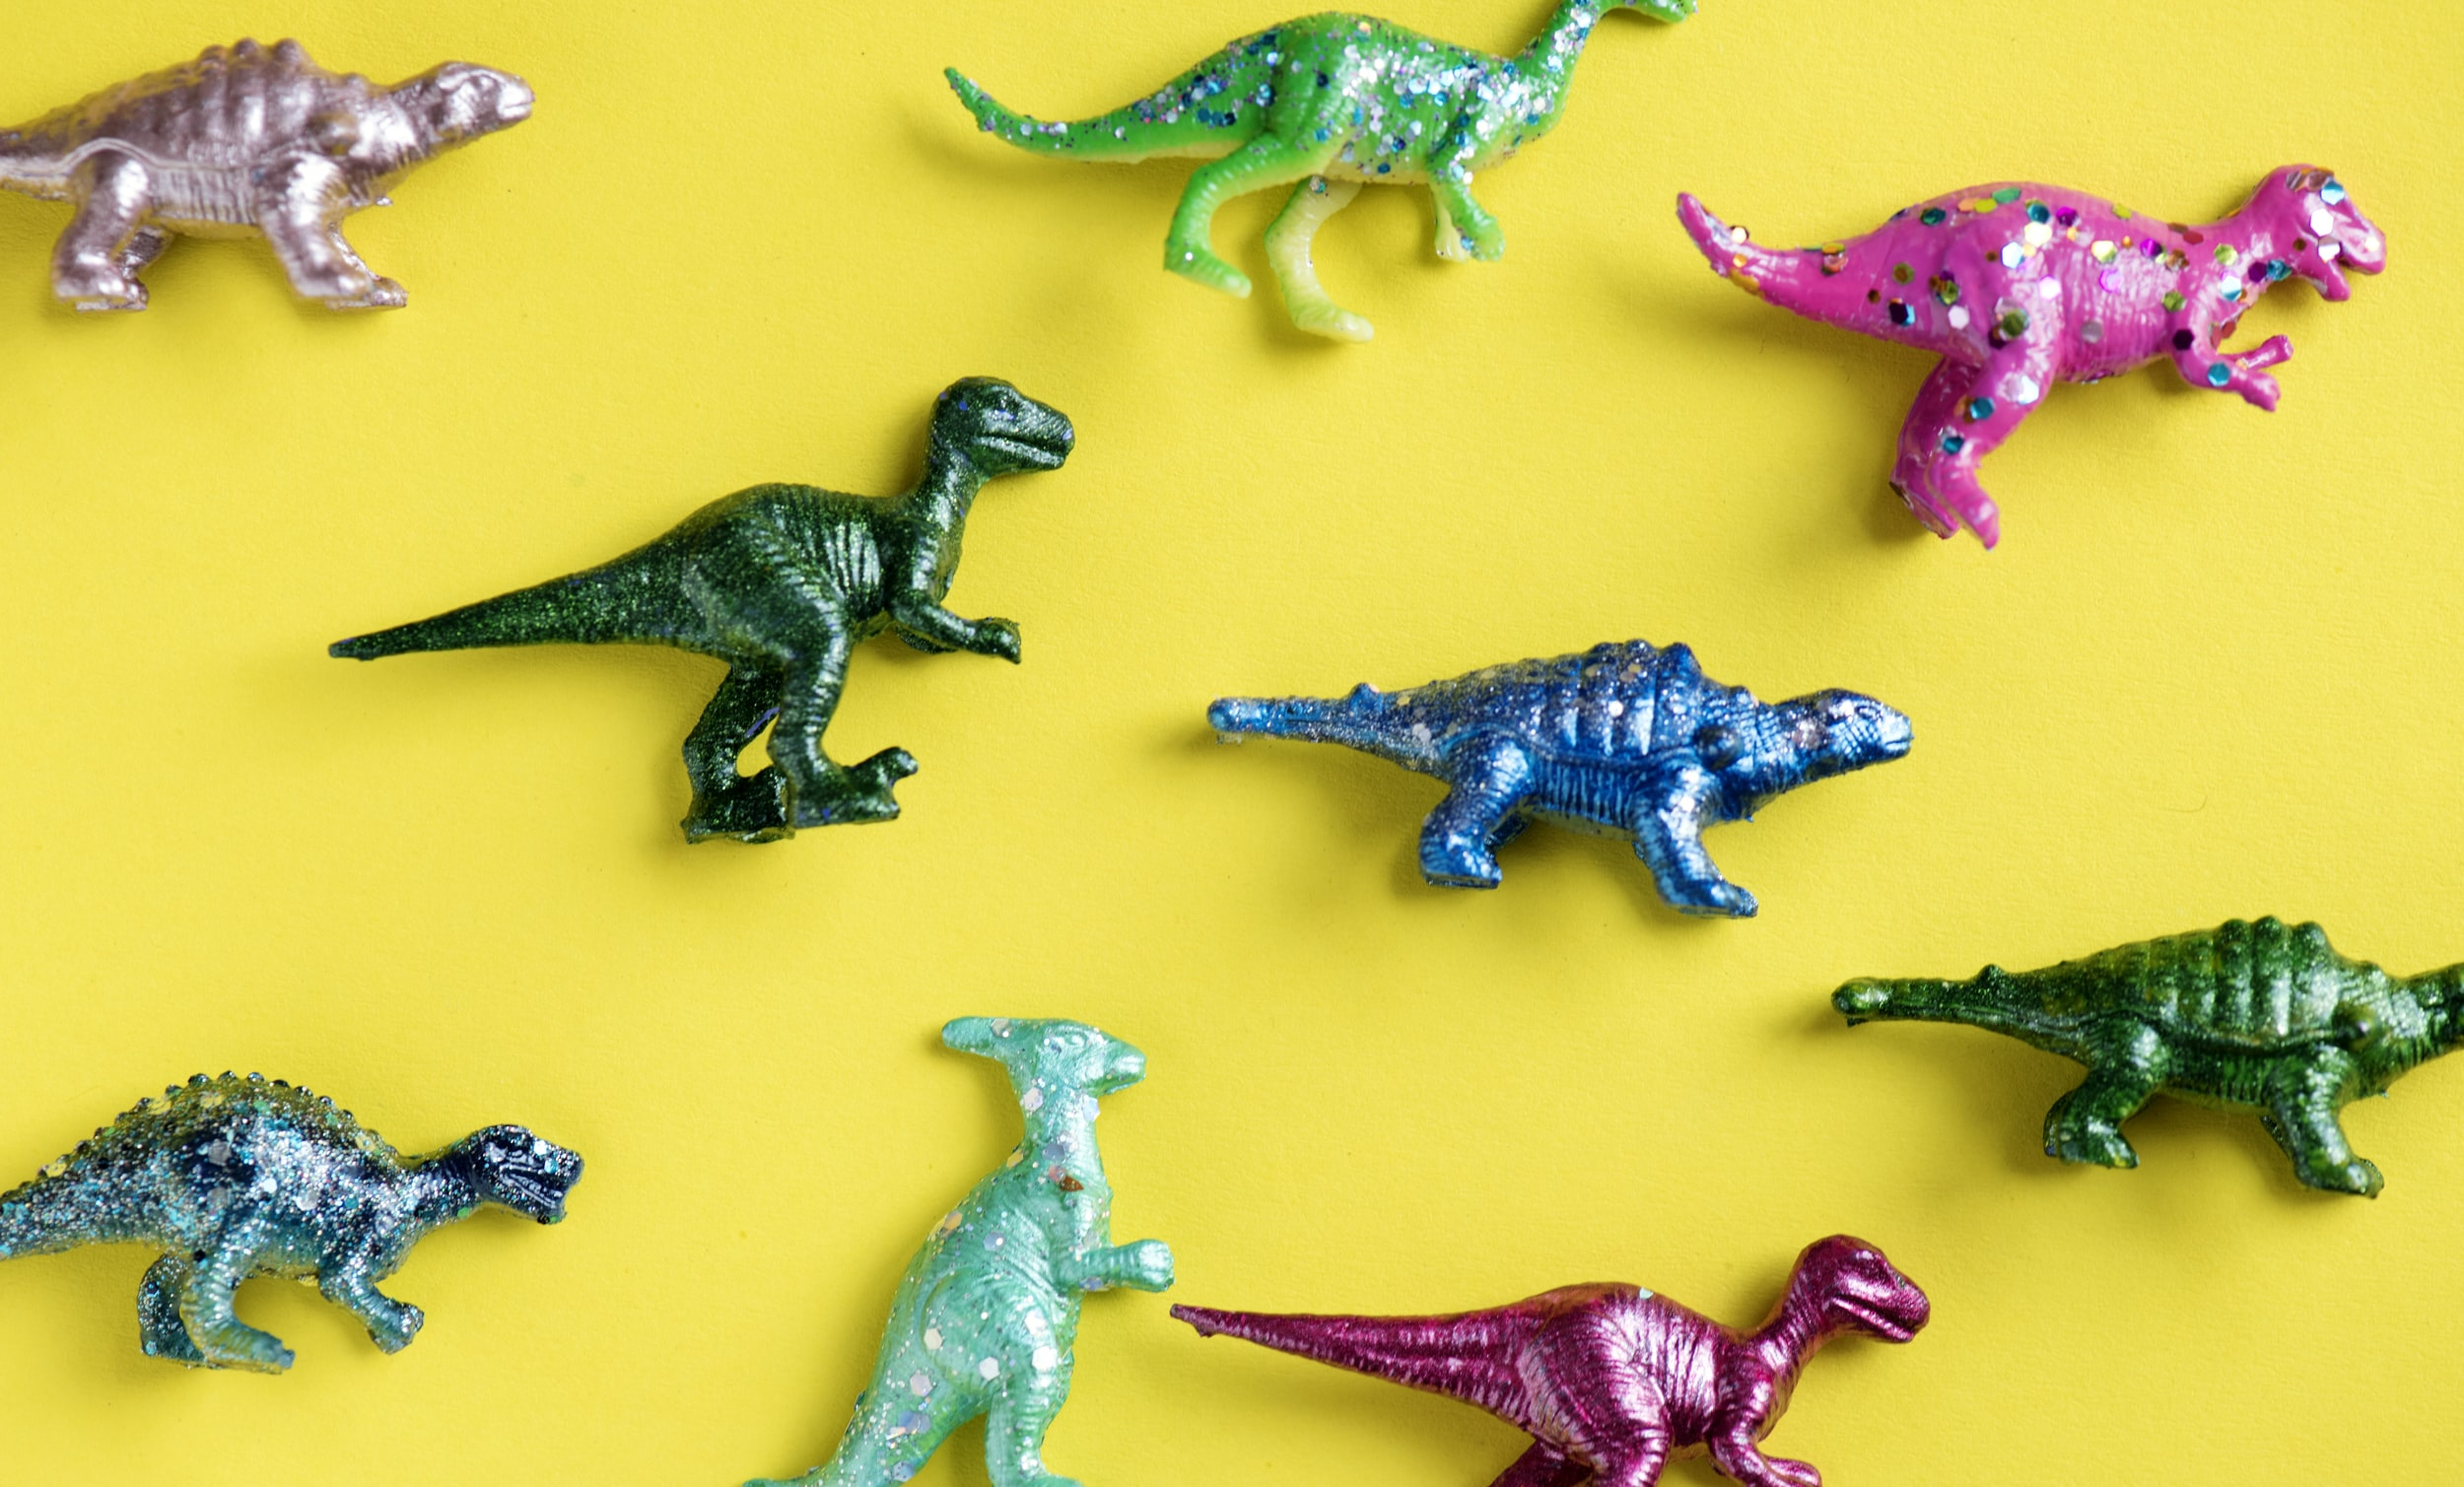 flat-lay photography of dinosaur figurines on yellow surface